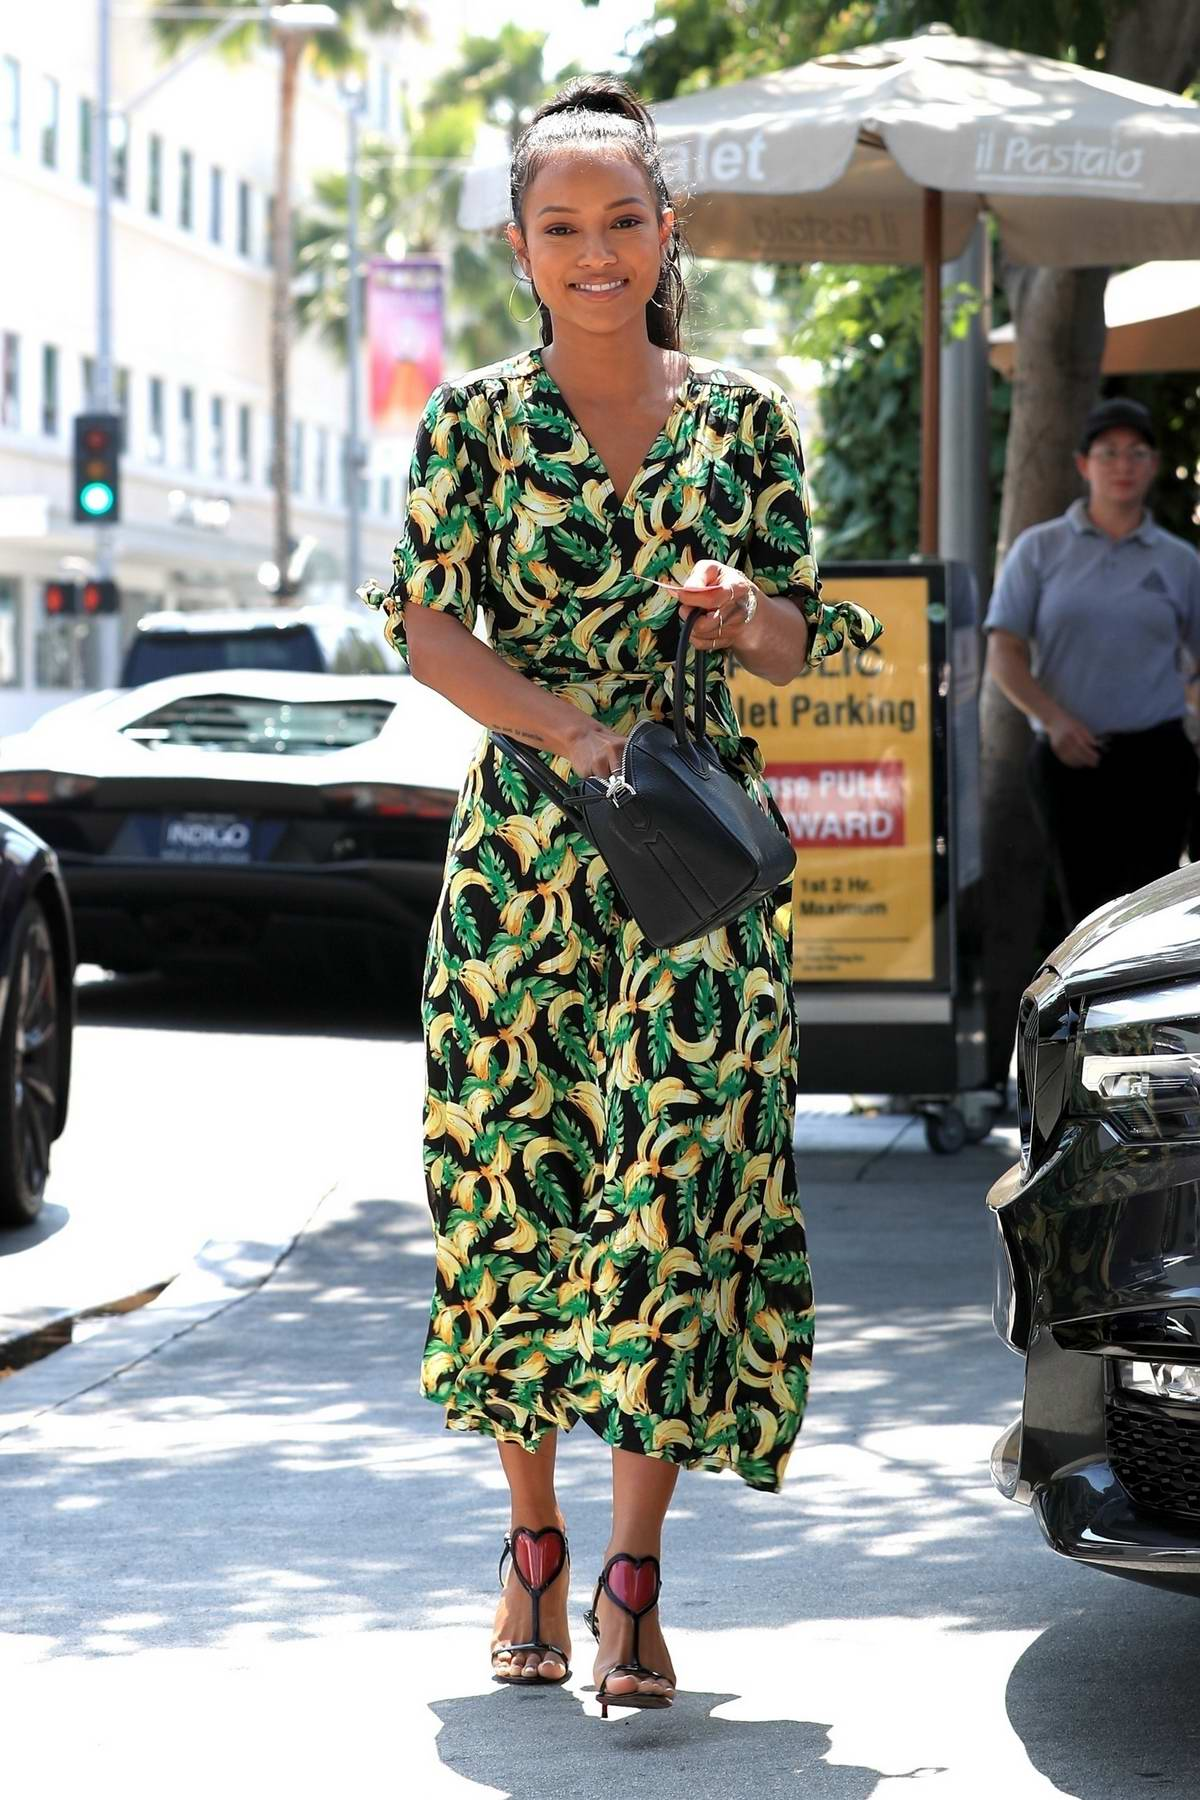 Karrueche Tran seen holding a flower bouquet as she leaves lunch at Il Pastaio in Beverly Hills, Los Angeles